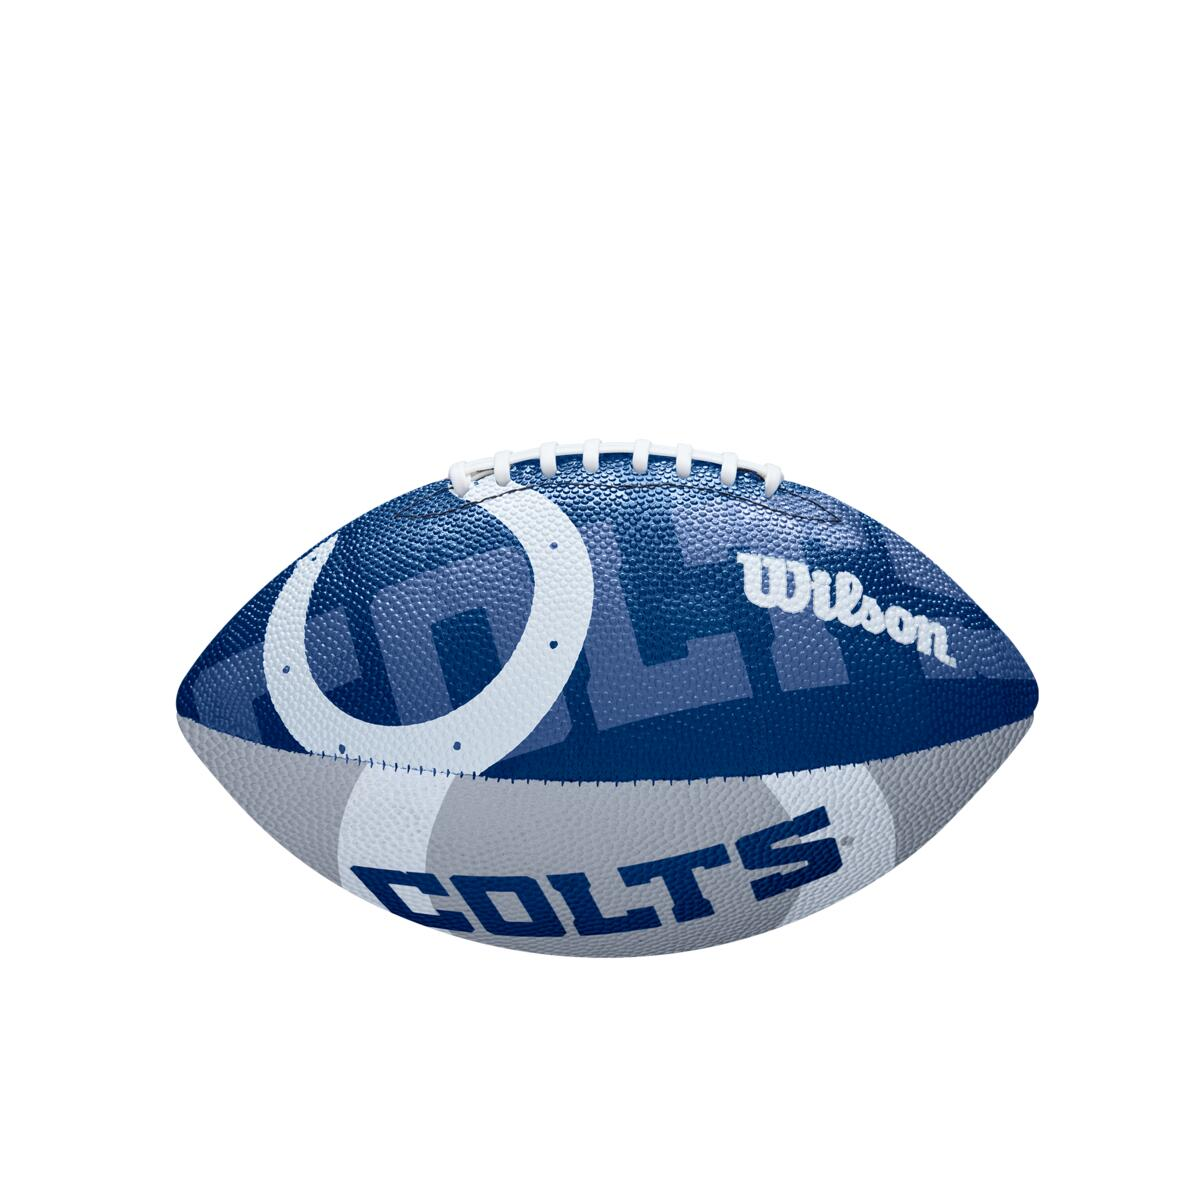 NFL Team Tailgate Football - Indianapolis Colts